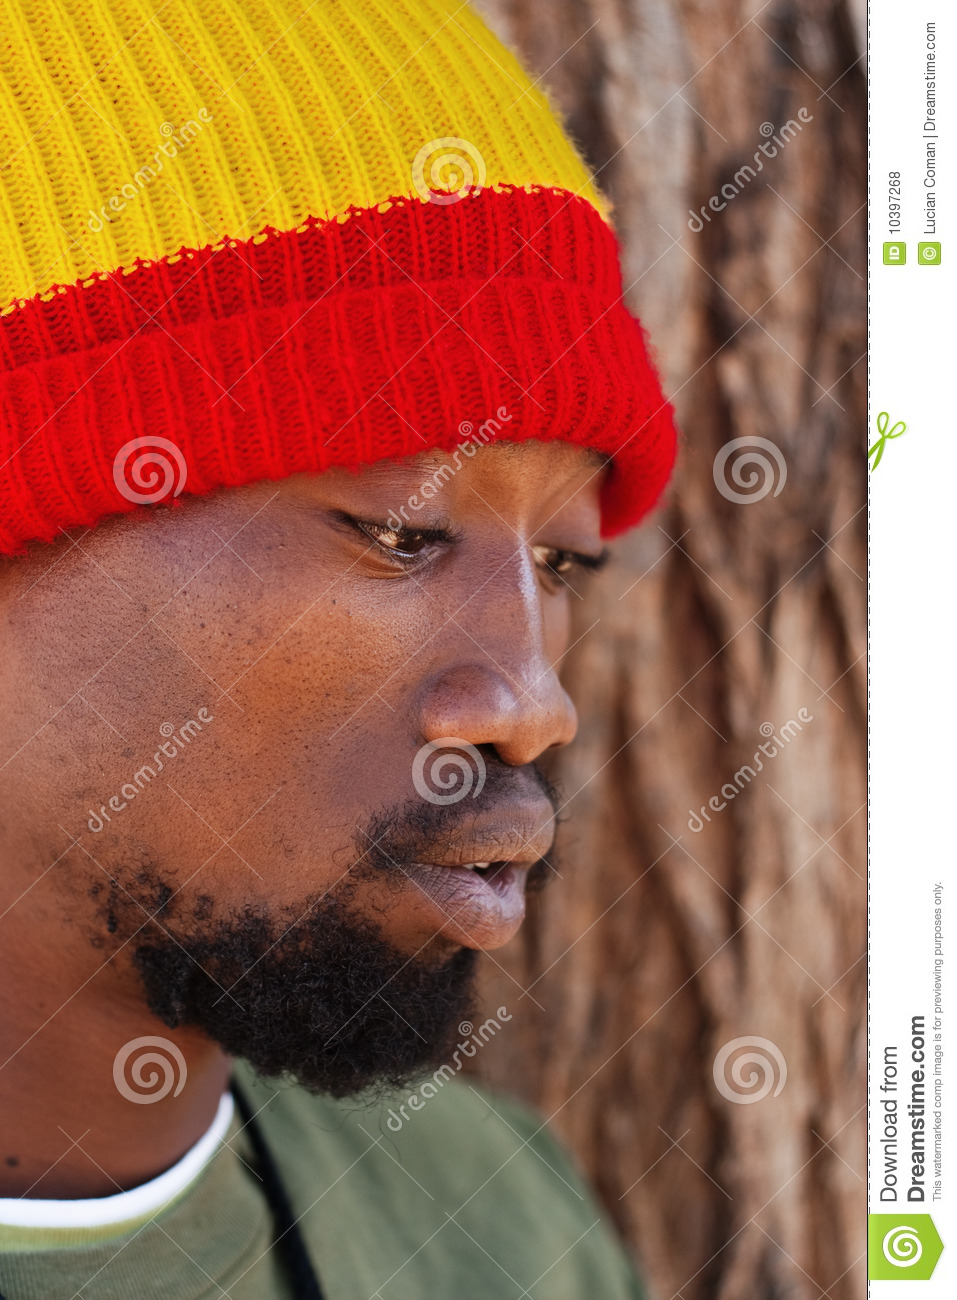 Rastafarian man stock photo  Image of rastafarianism - 10397268